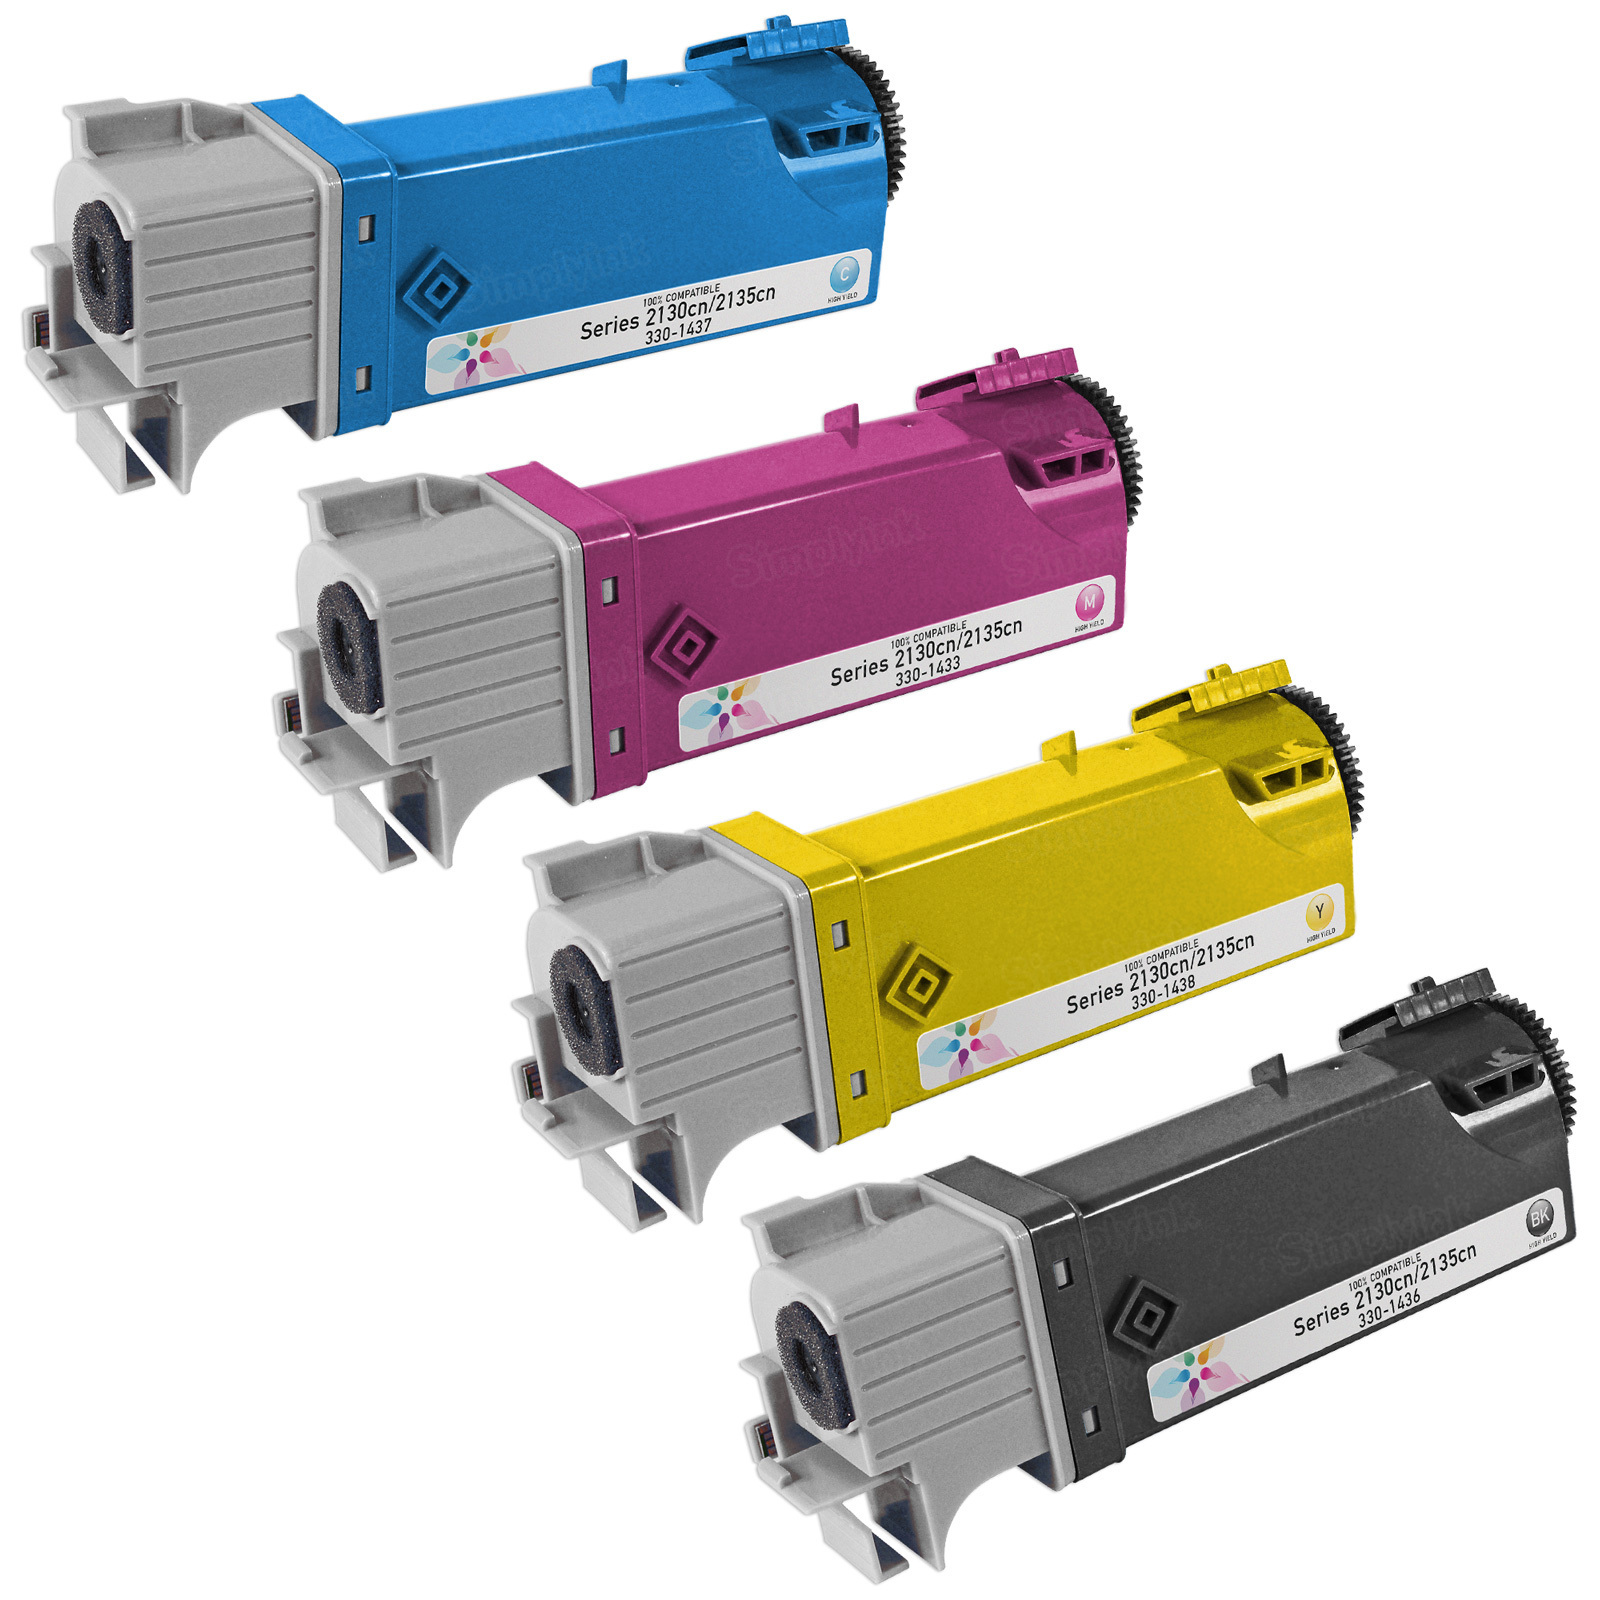 Compatible Set of 4 HY Toners for use in the Dell Laser 2130cn and 2135cn, (Bk, C, M, Y)